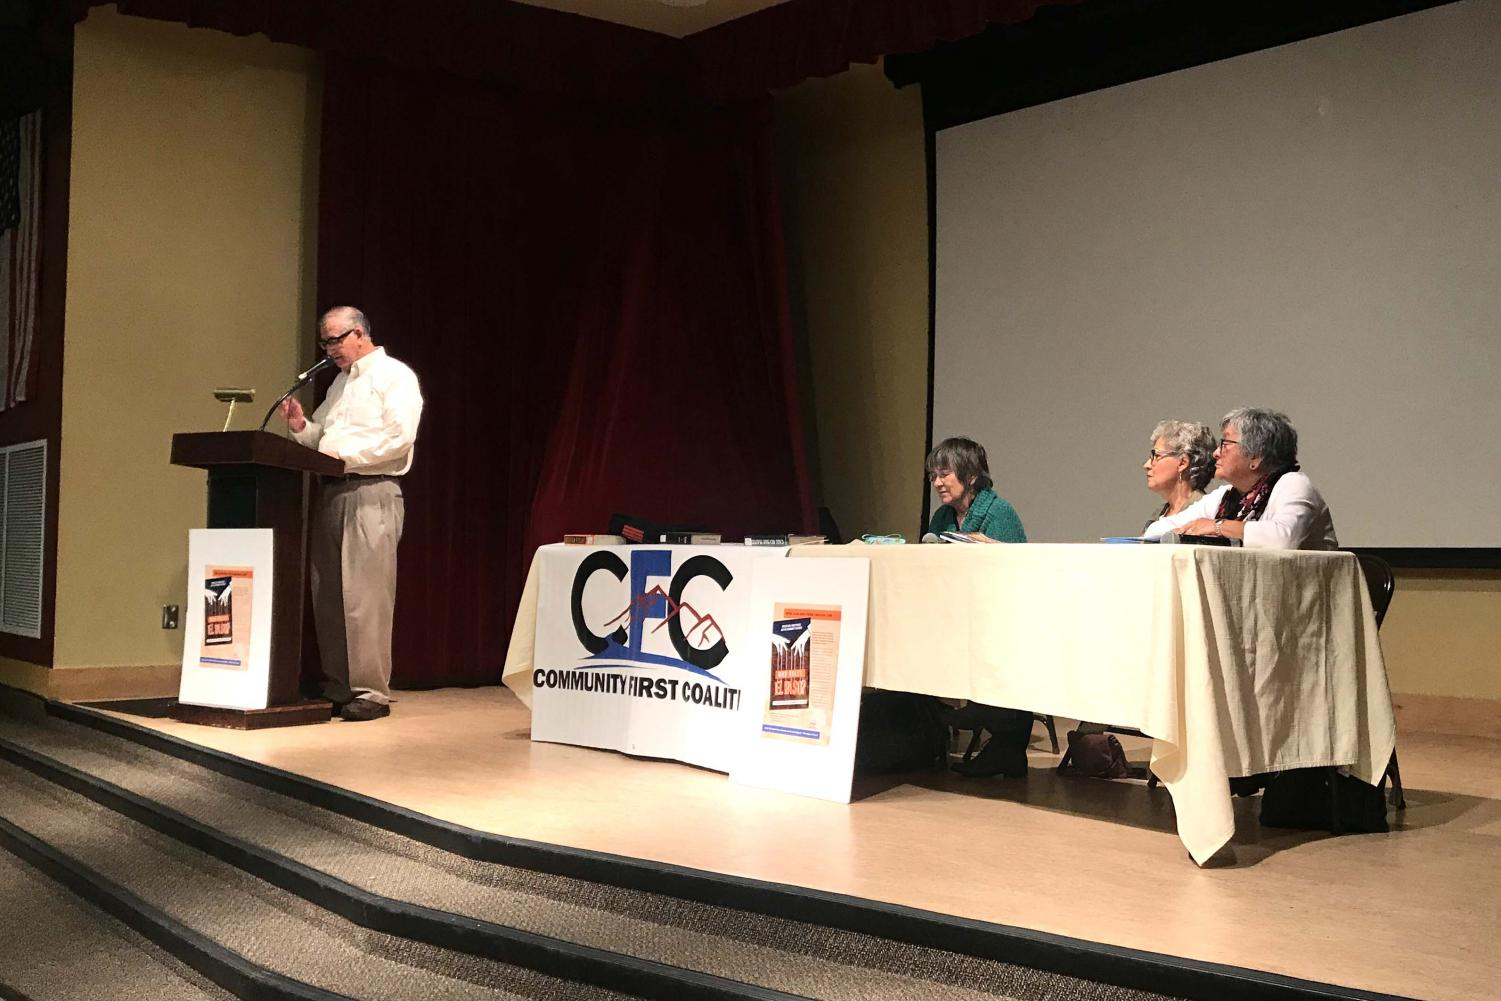 """Oscar J. Martínez, scholar and expert on borderlands history, welcoming the audience to a discussion on the newly released book """"Who Rules El Paso?"""" Sunday, Dec. 15 at the Downtown El Paso Public Library."""